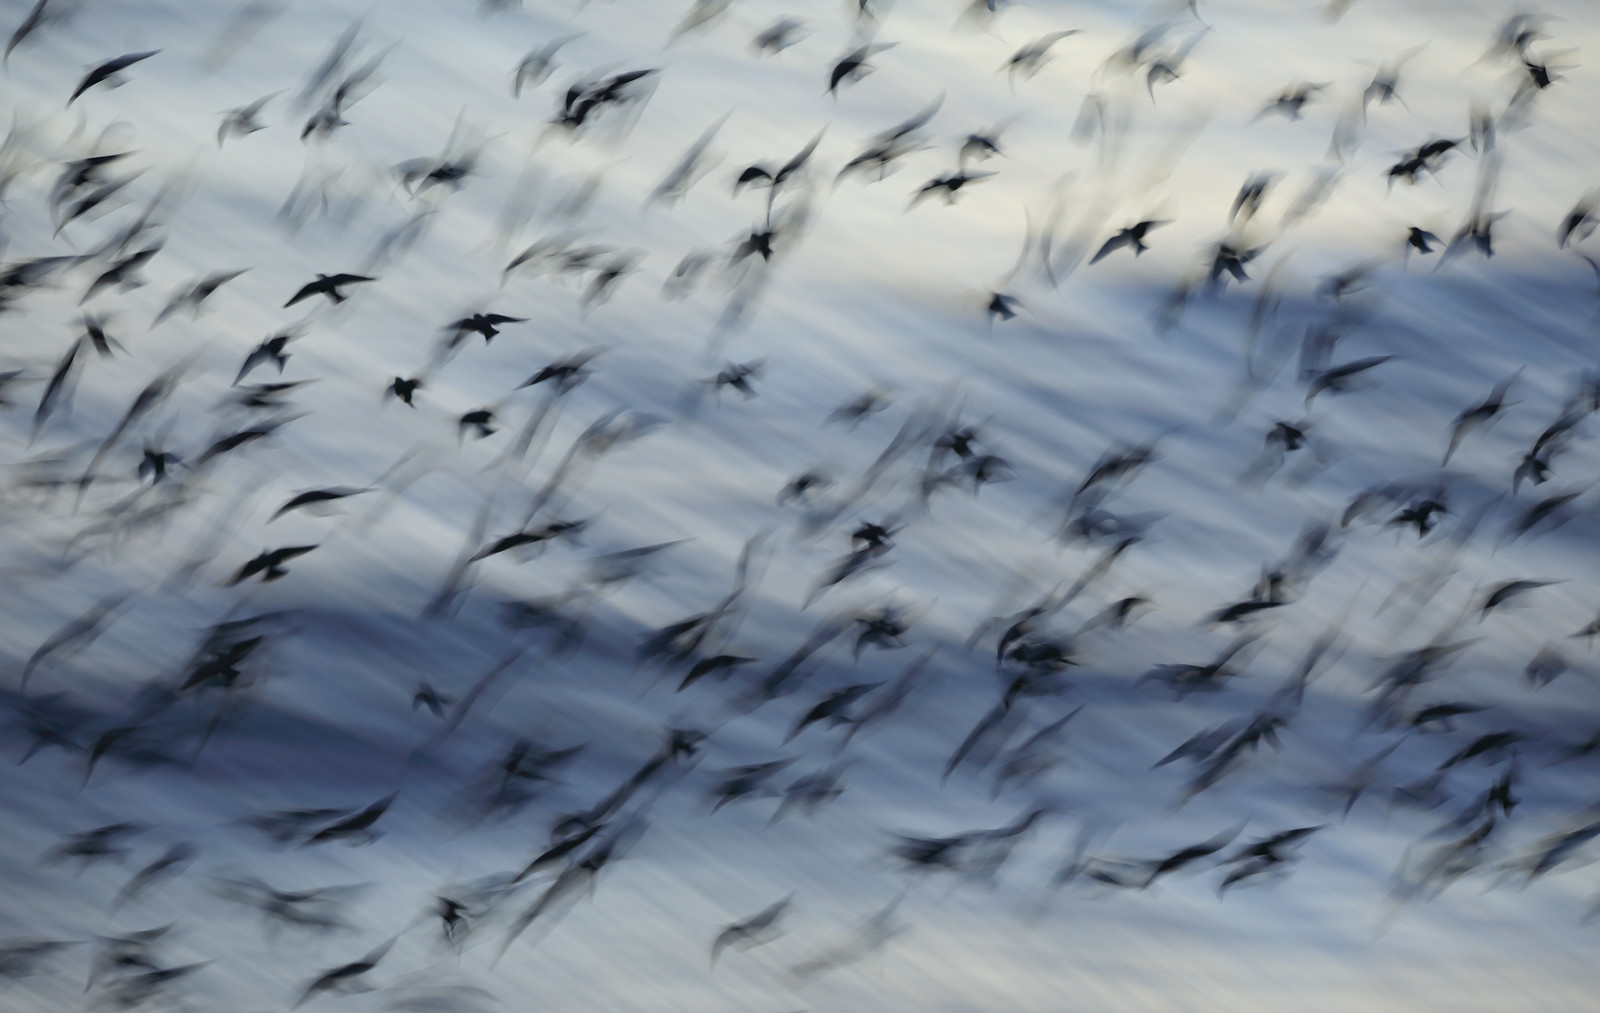 Starling Motion Blur and Waves